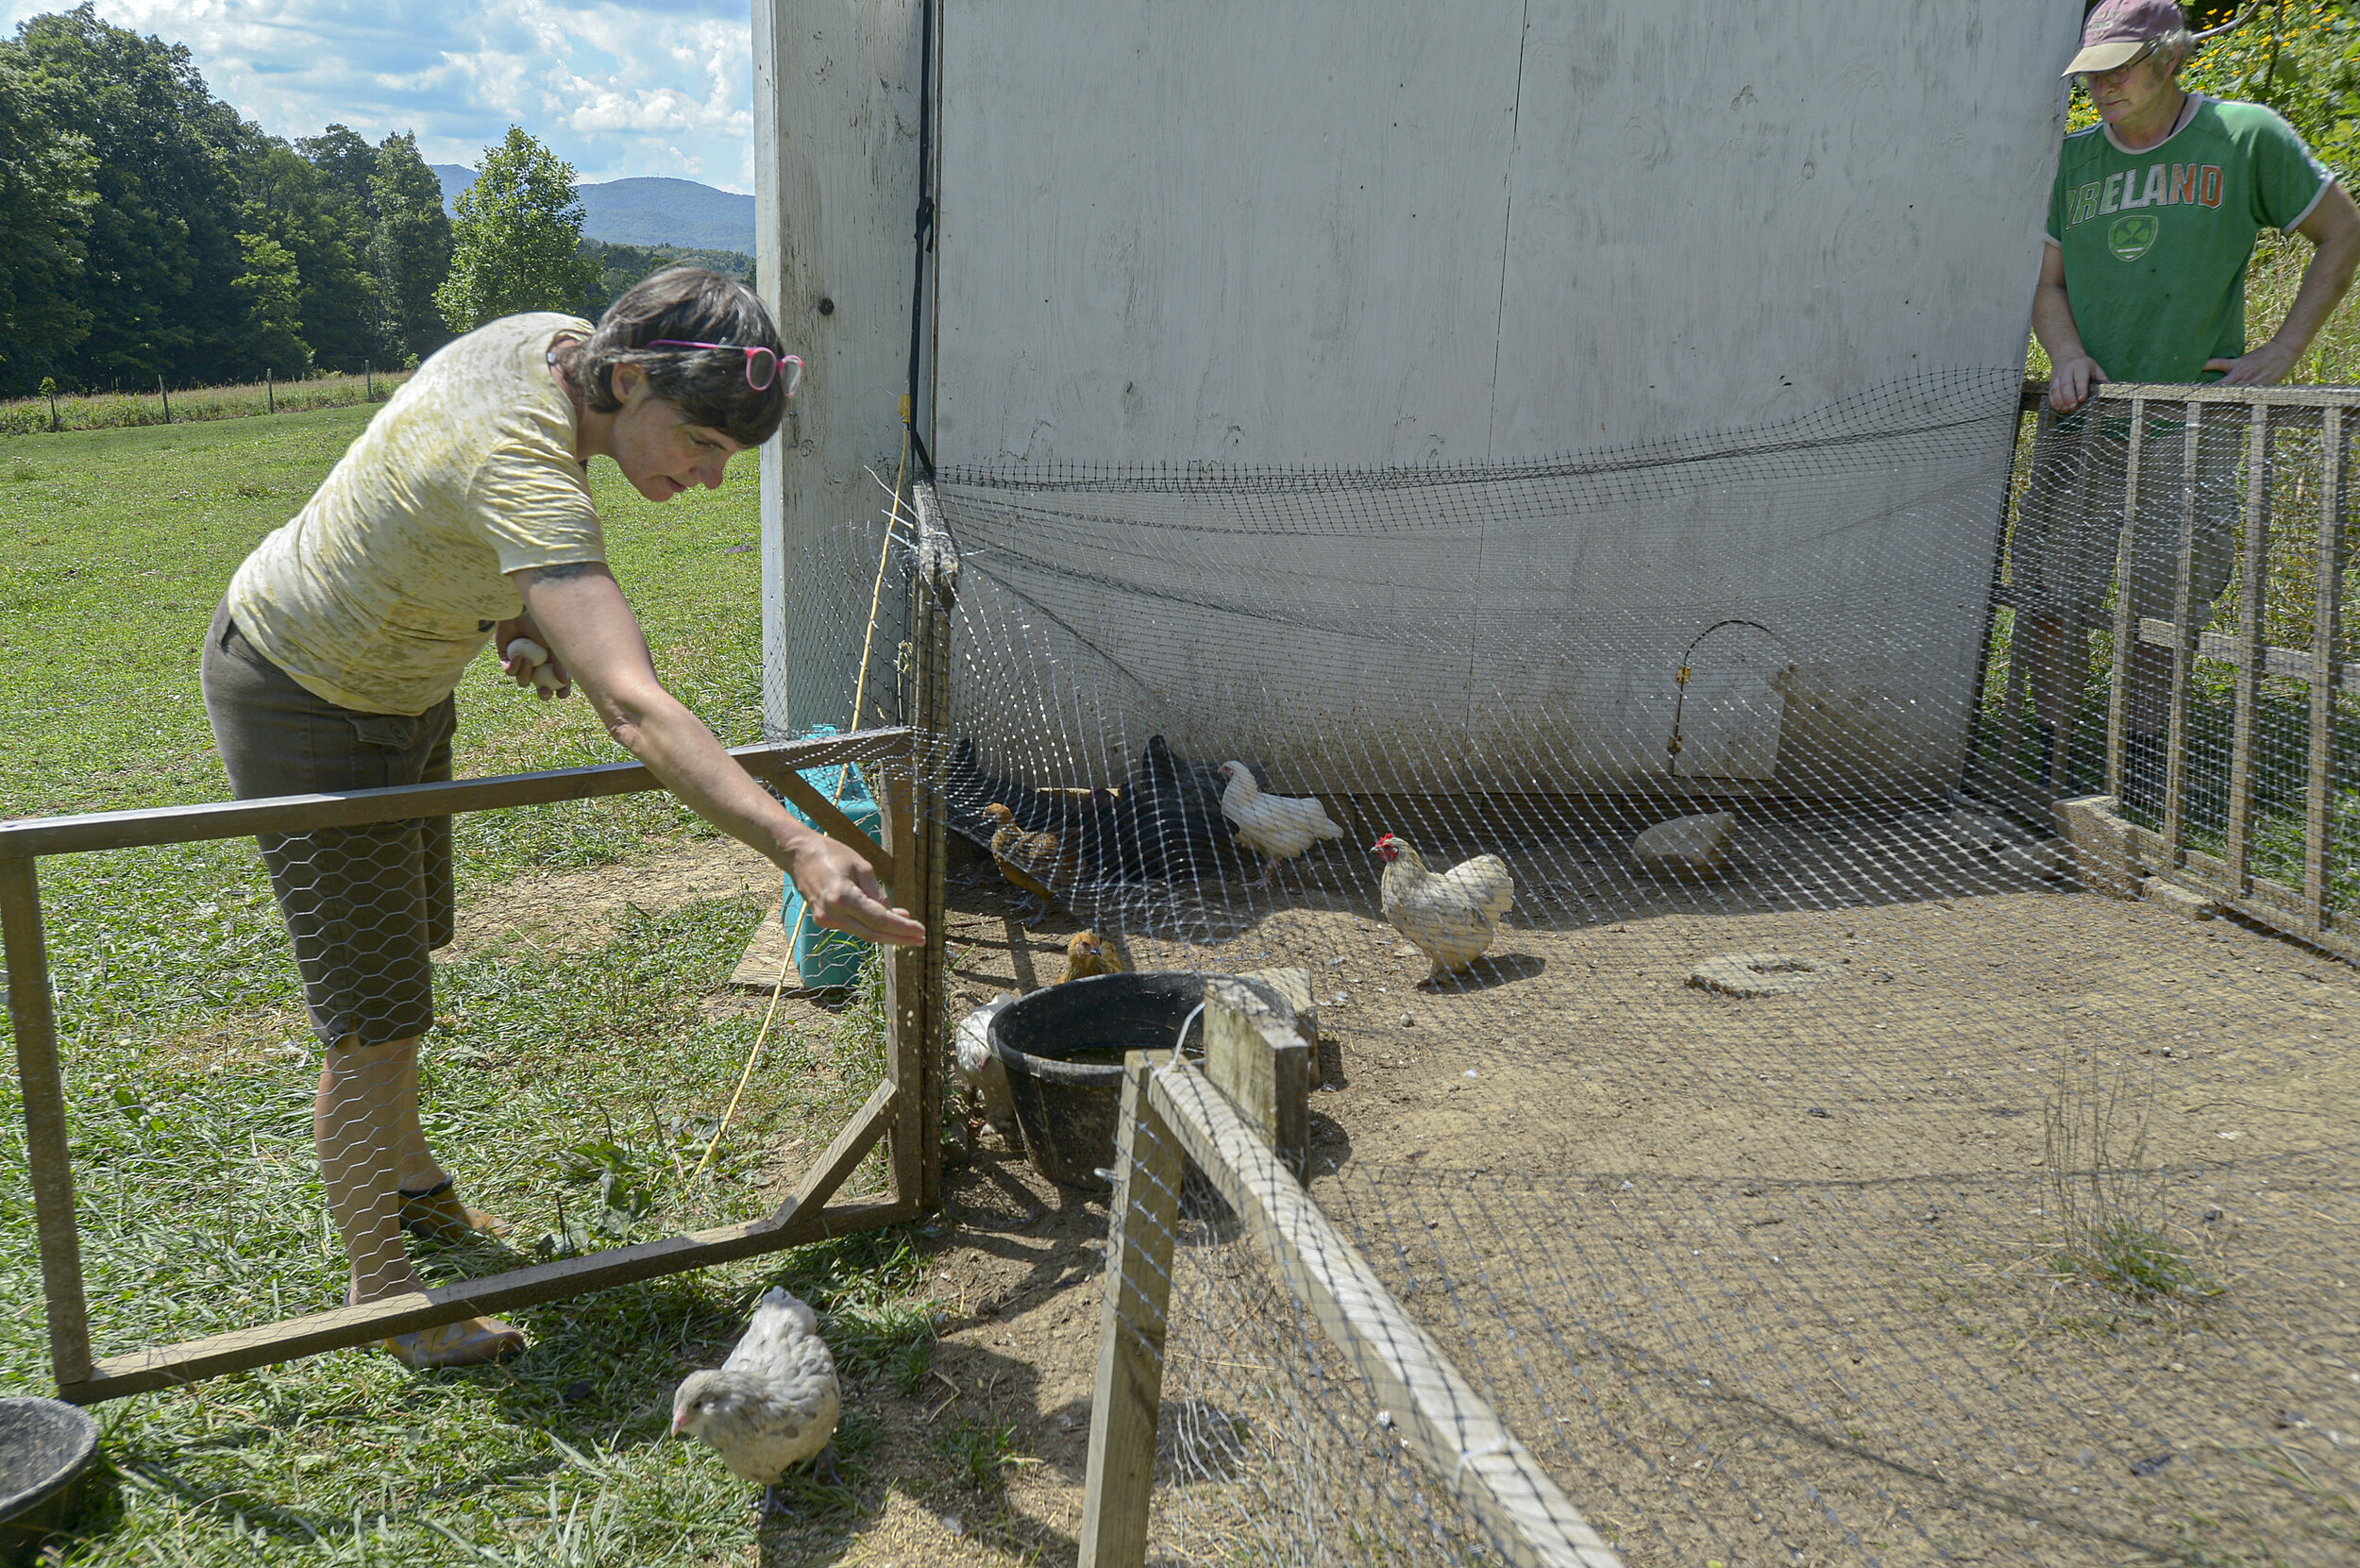 Jennifer Boyle-Hempel, left, and her husband, Kevin Boyle, feed chickens on their family farm on July 13, 2020, in Randolph County. Photo by F. Brian Ferguson